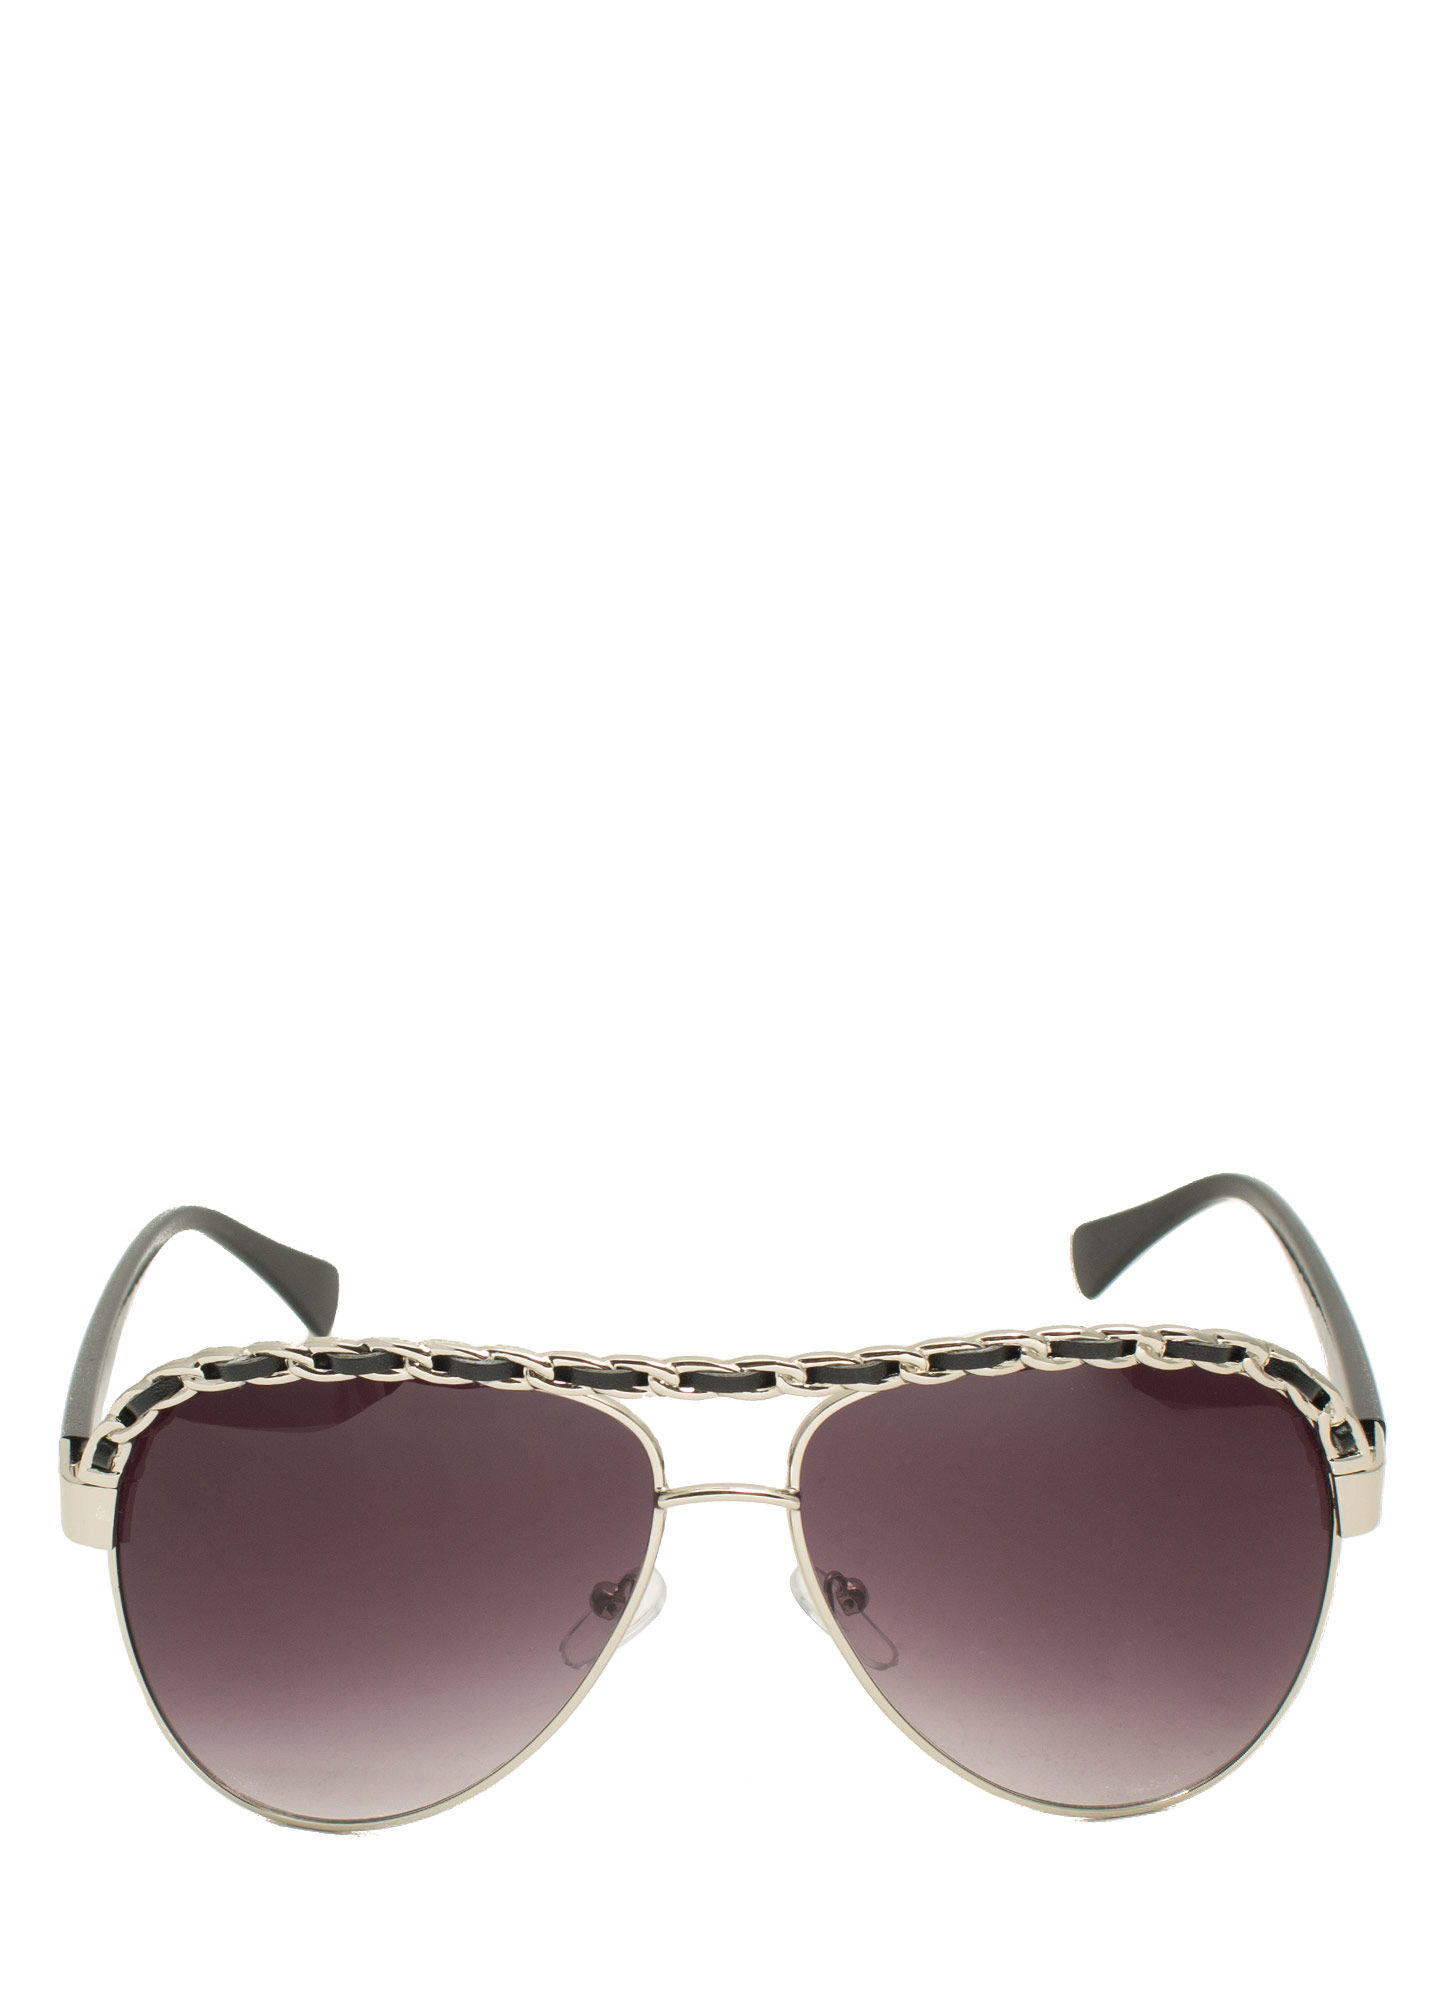 Chain Trimmed Aviator Sunglasses BLACKSILVER